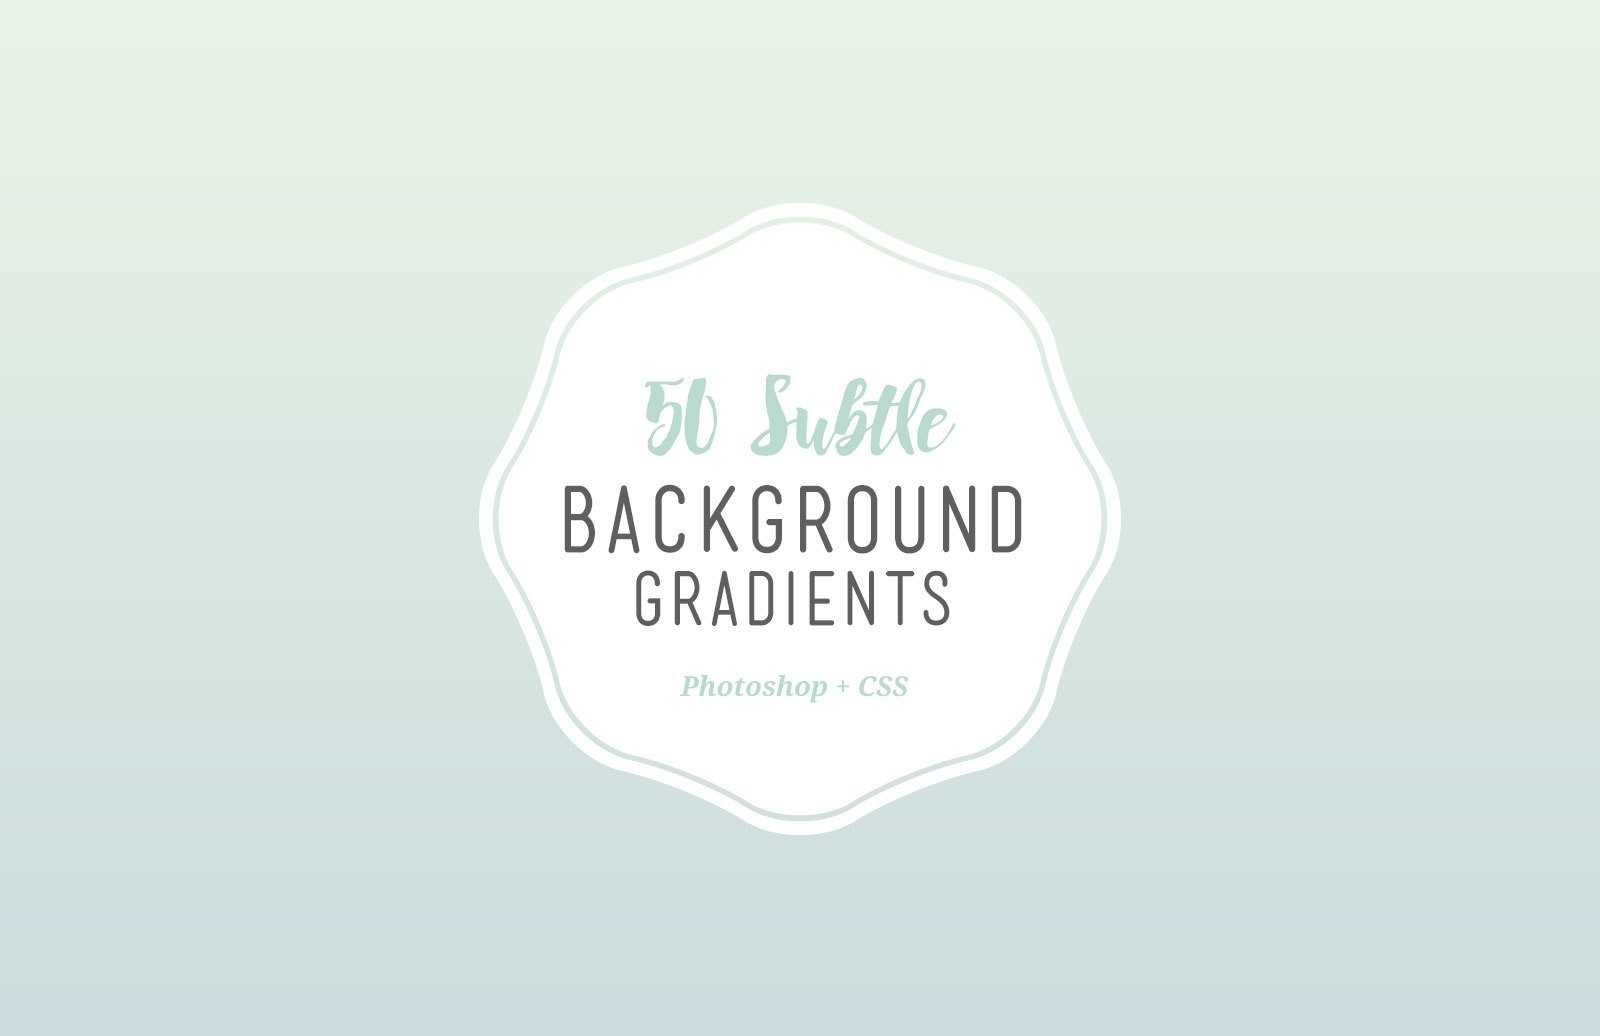 50 Subtle Background Gradients (CSS) 2